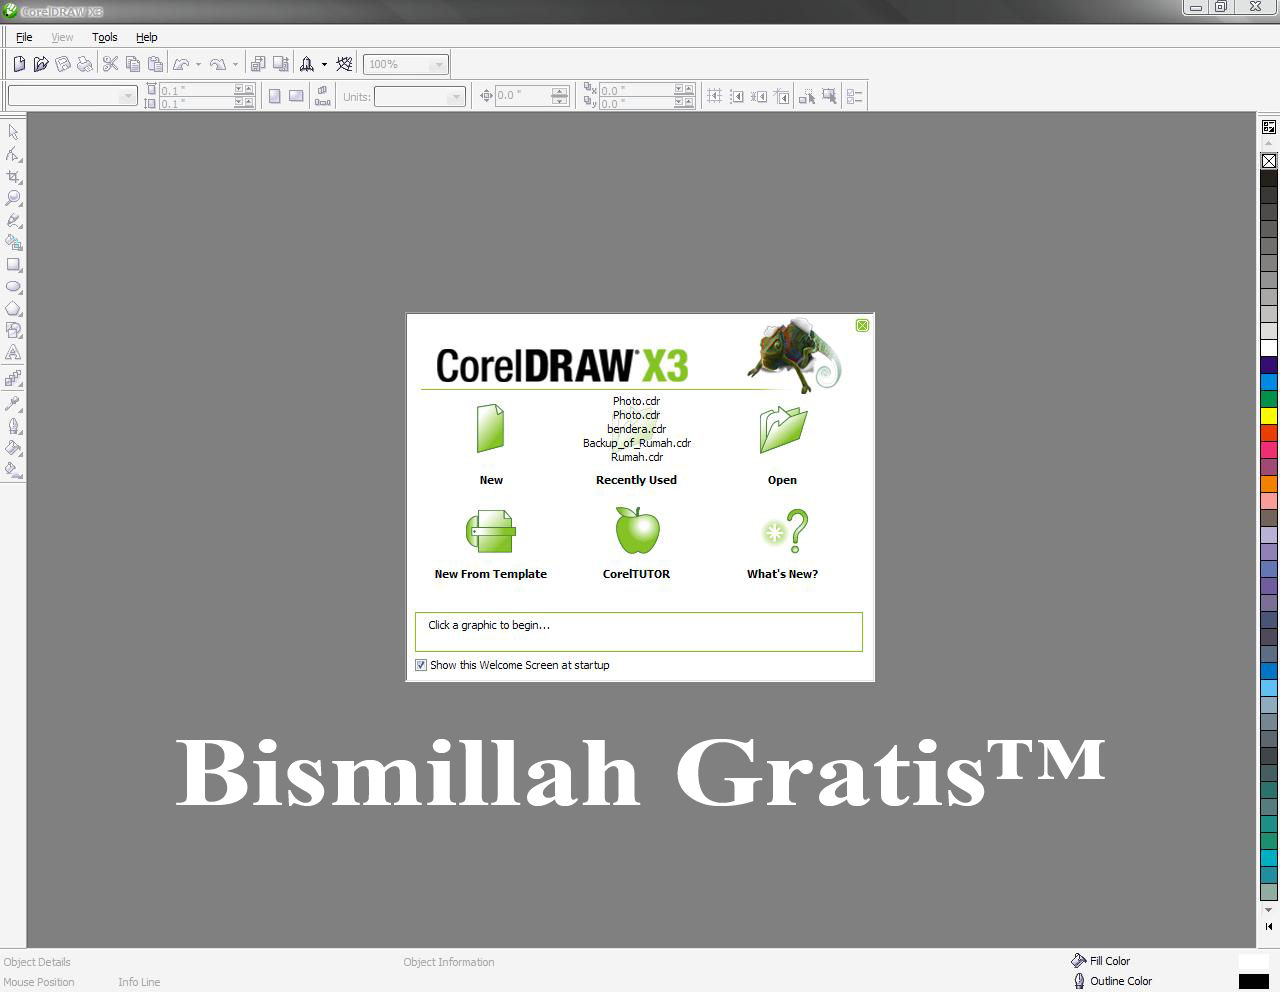 http://bismillah-gratis.blogspot.com/2014/09/BG-corel-draw-x3-full-version-with-crack.html